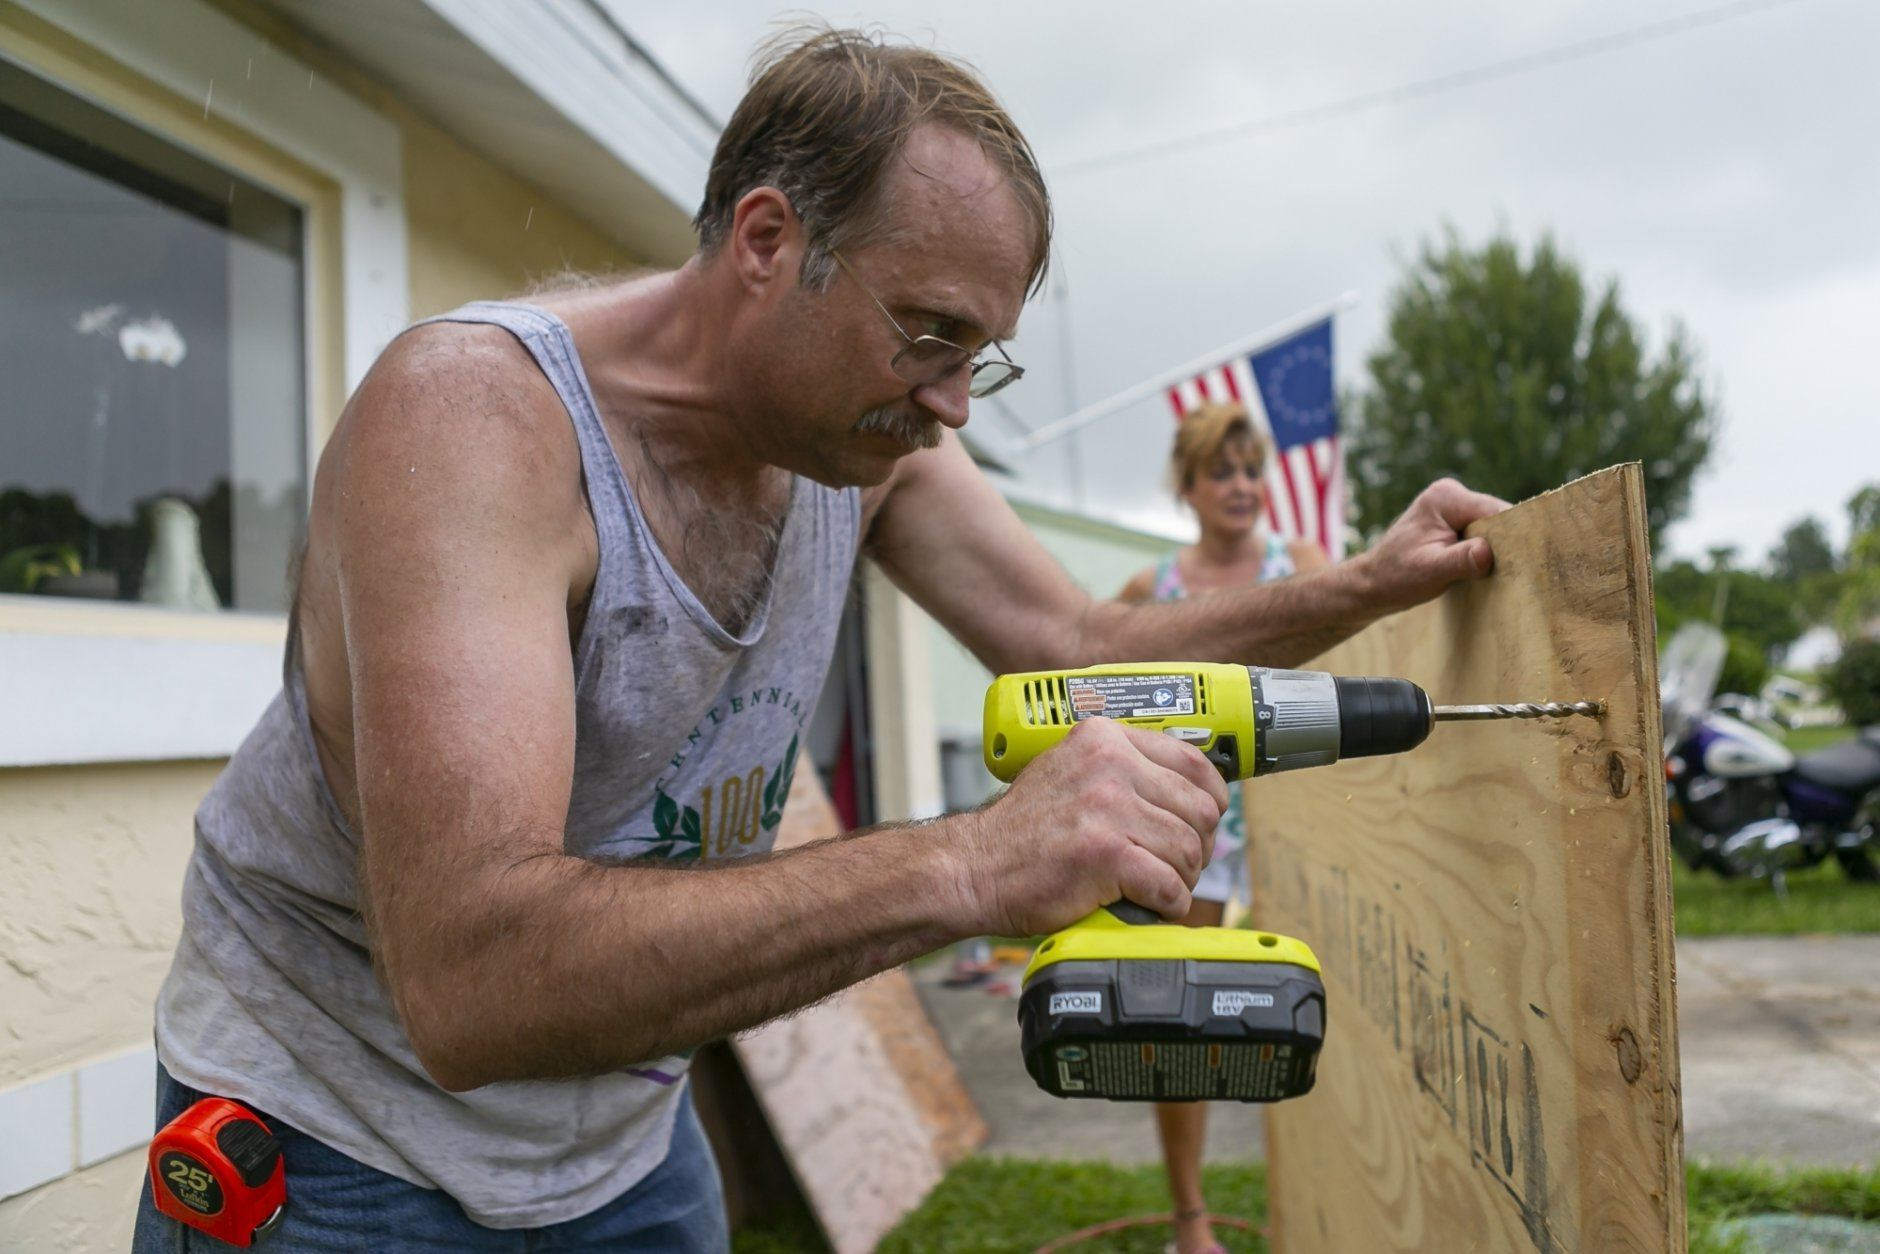 Colin Johnson drills plywood as he prepares to board a window at his father's home in preparation for Hurricane Dorian, Friday, Aug. 30, 2019, in Vero Beach, Fla. Johnson's father, Larry, unexpectedly died Thursday. (Matias J. Ocner/Miami Herald via AP)